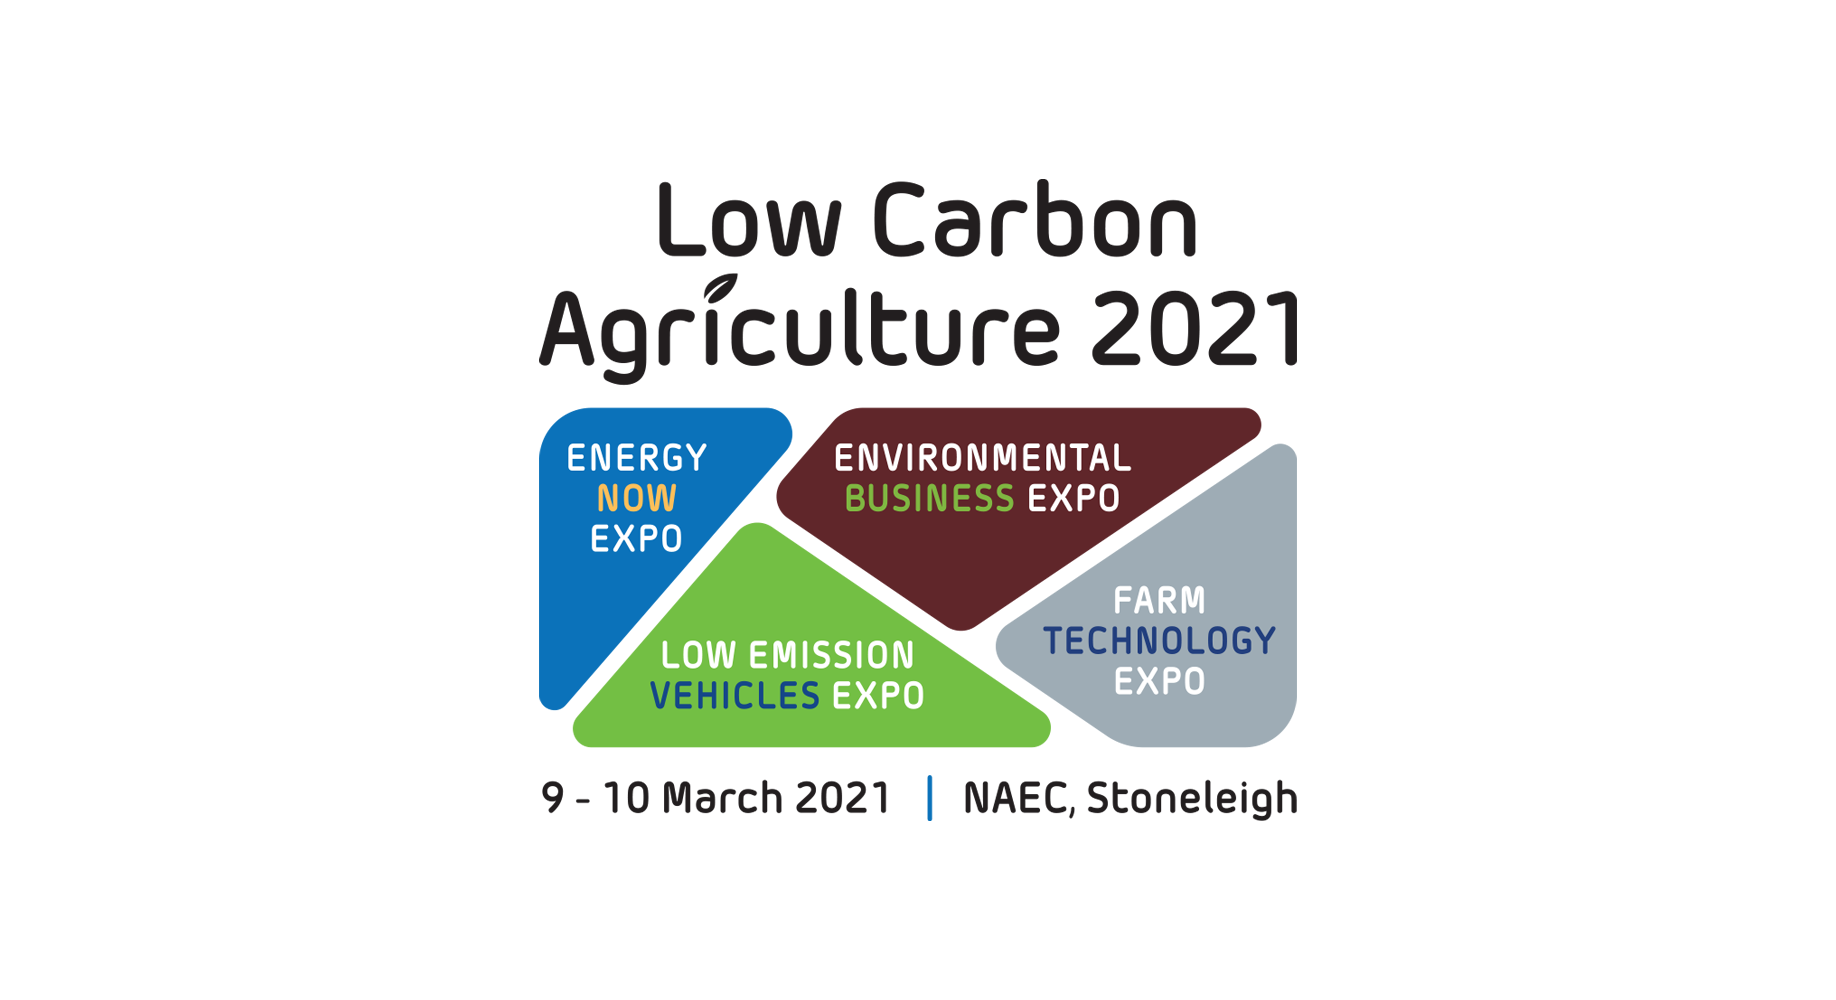 Low Carbon Agriculture launches in the UK